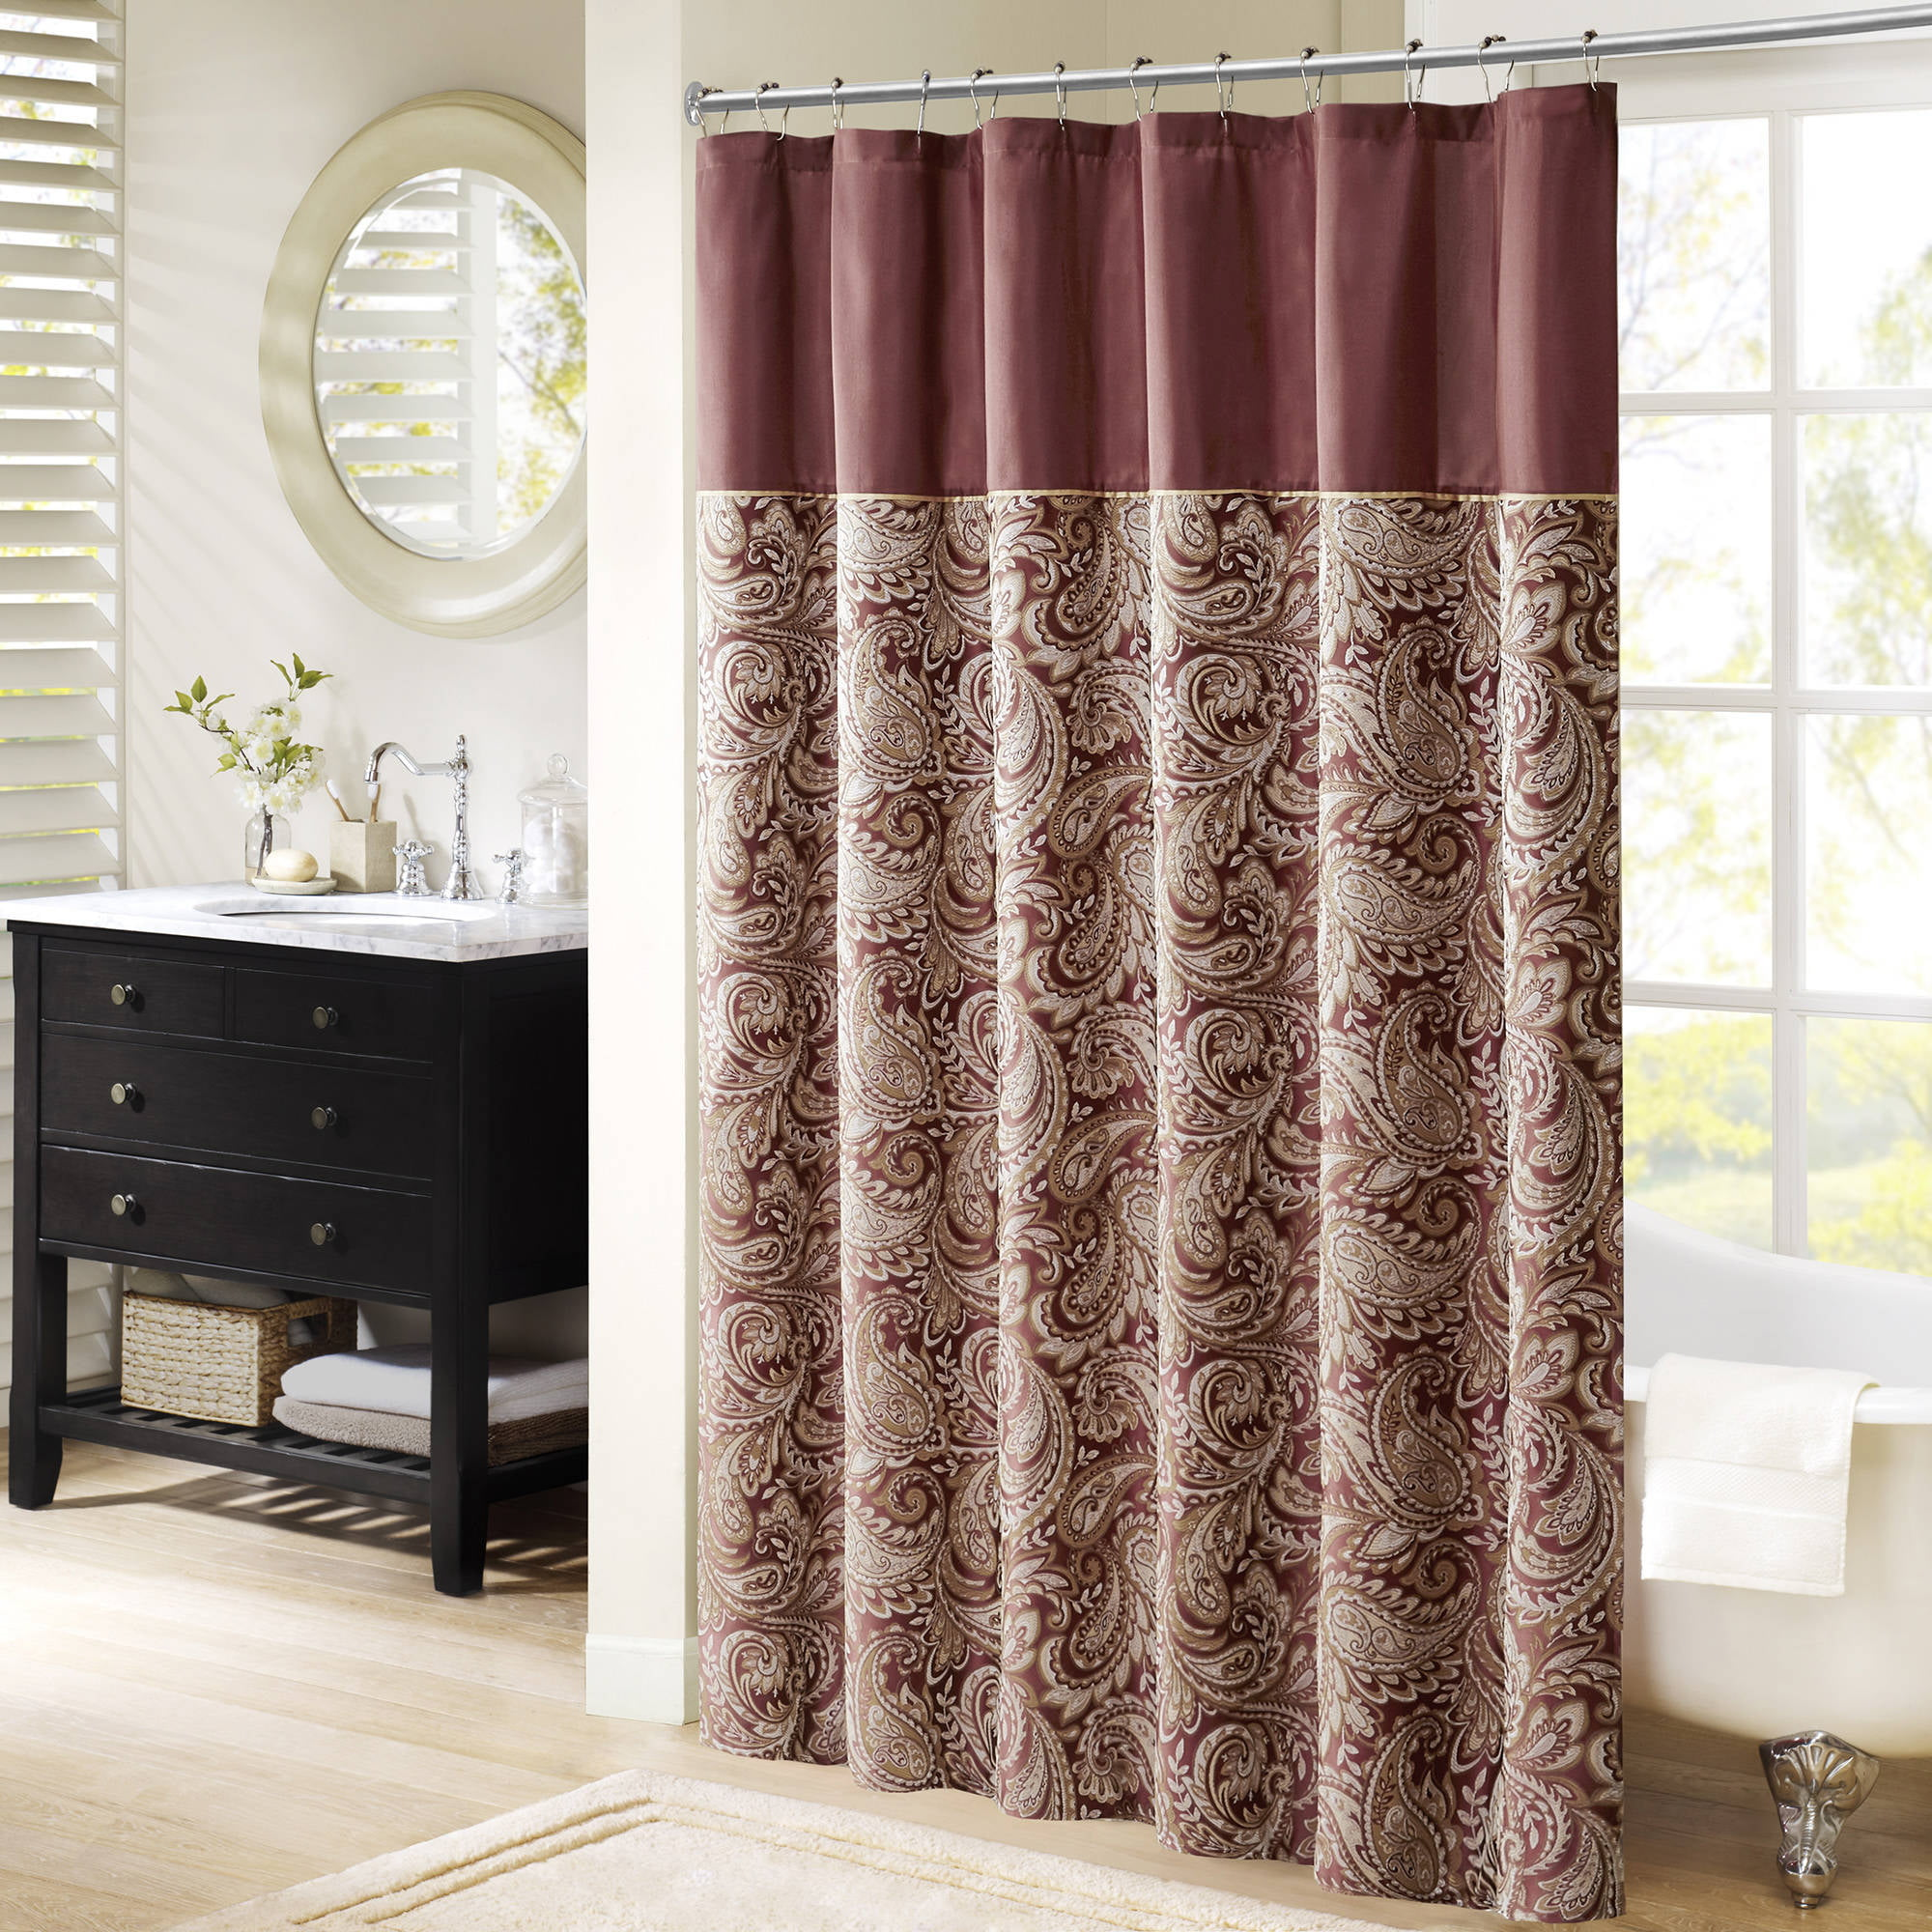 Shower Curtains Walmartcom - Target black and white bath rug for bathroom decorating ideas